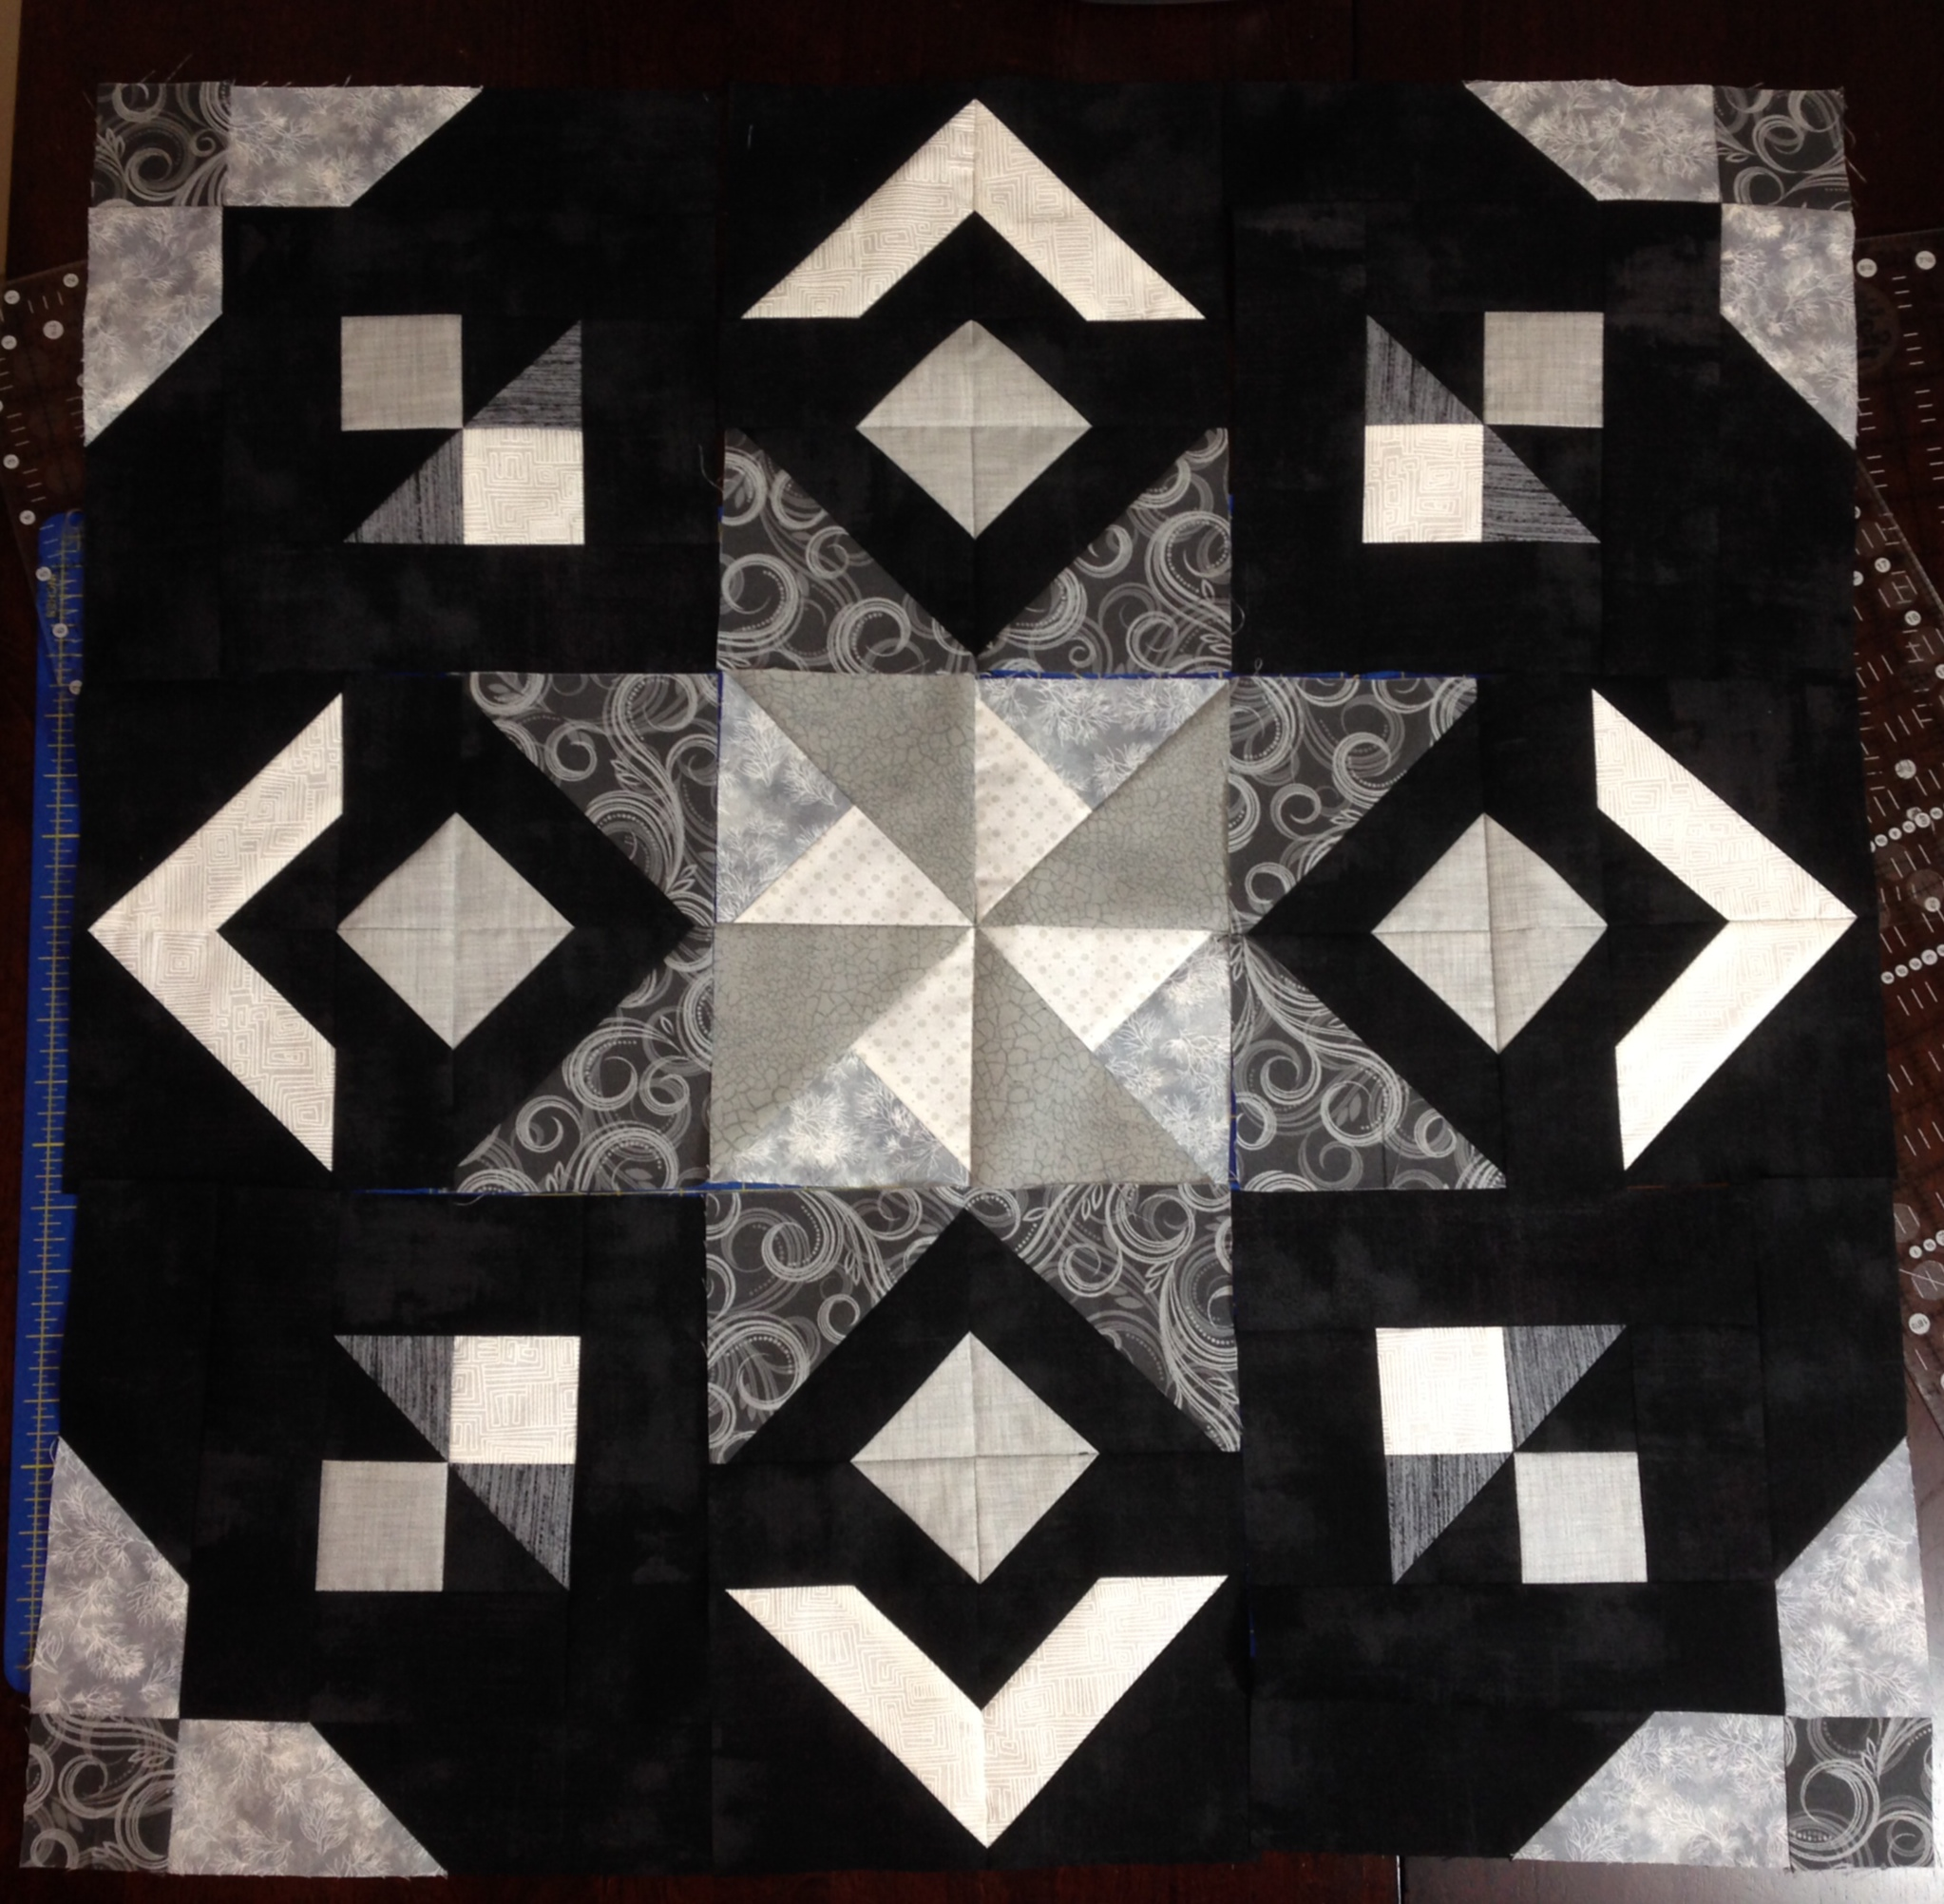 bianca black cover manchester orna quilt by house elegance set